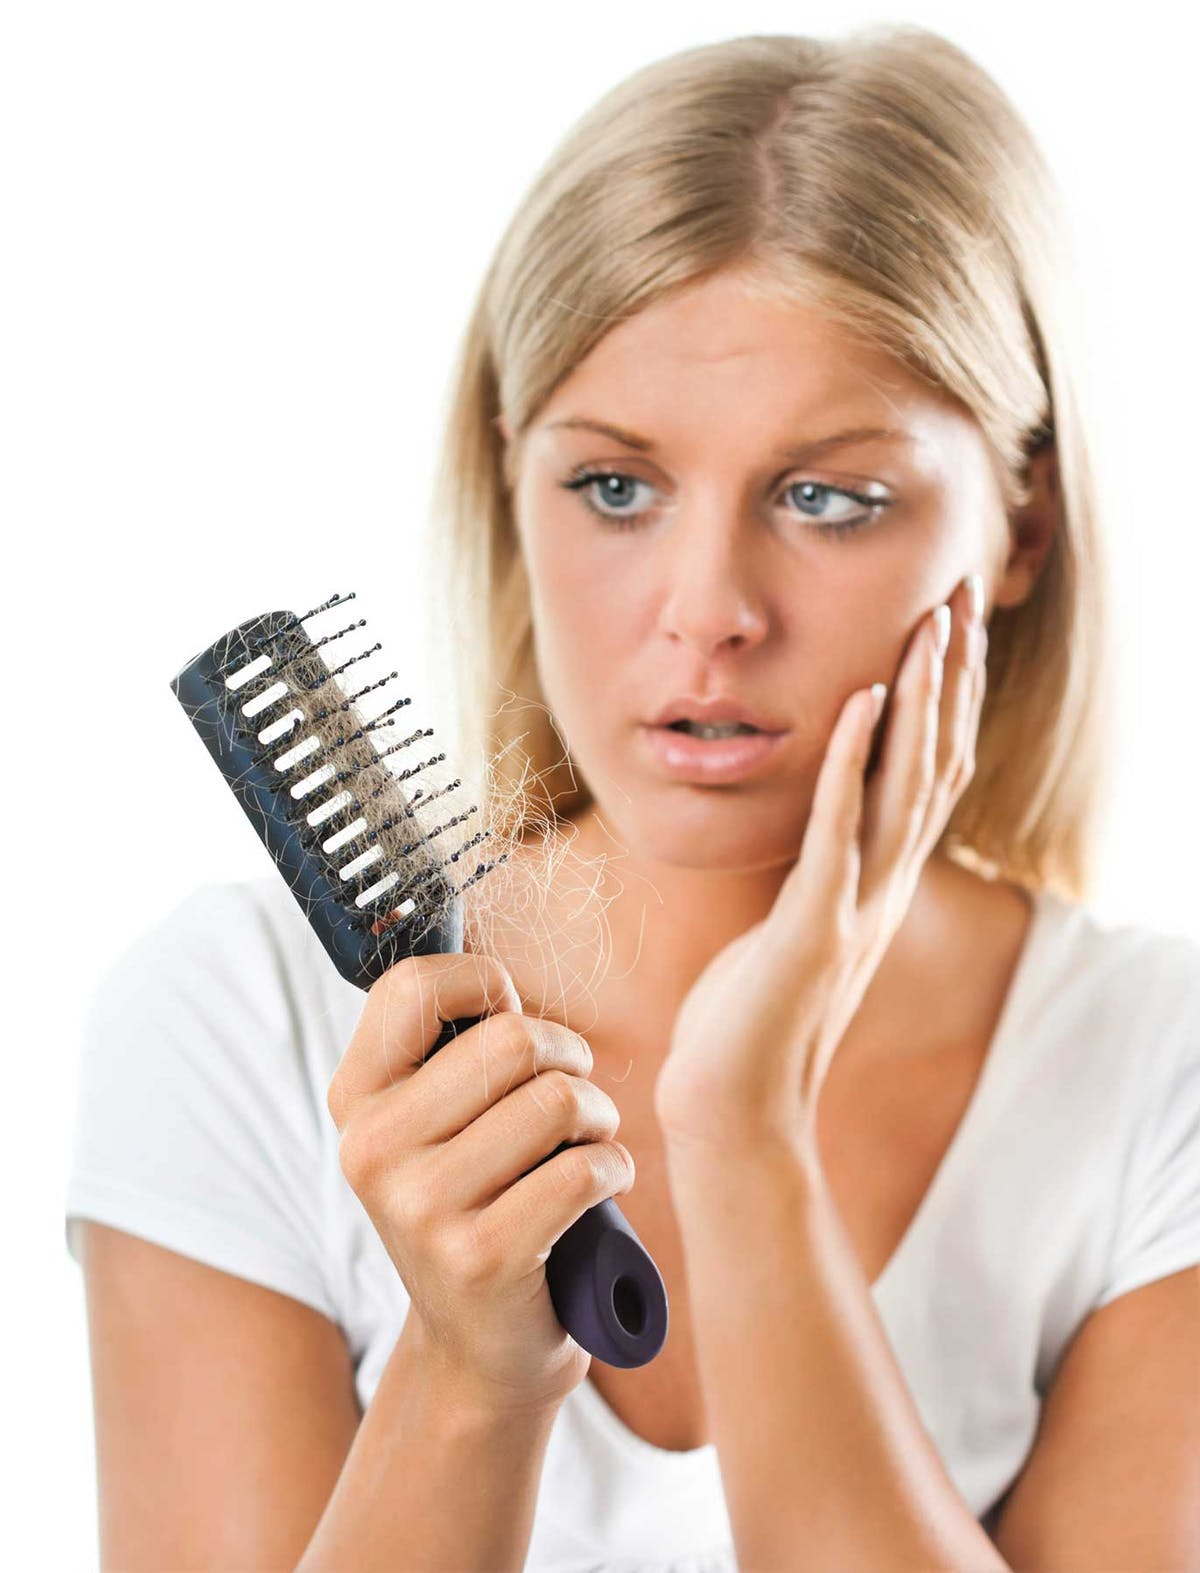 can diet cause hair loss